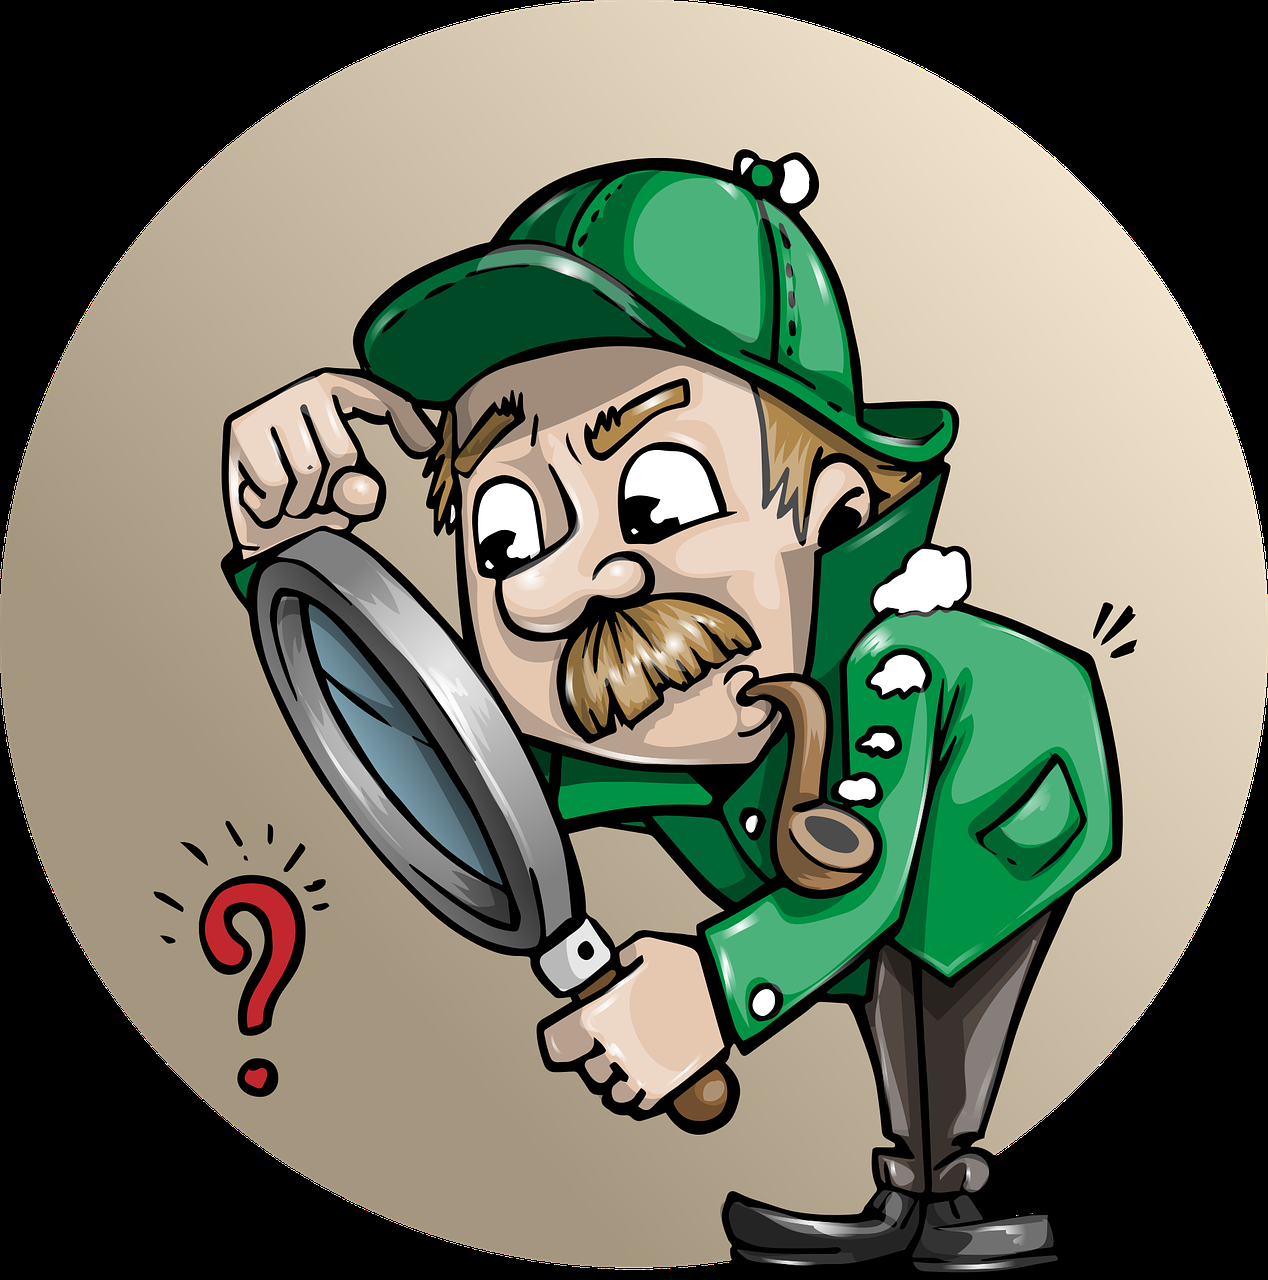 man analyzing with magnifying glass